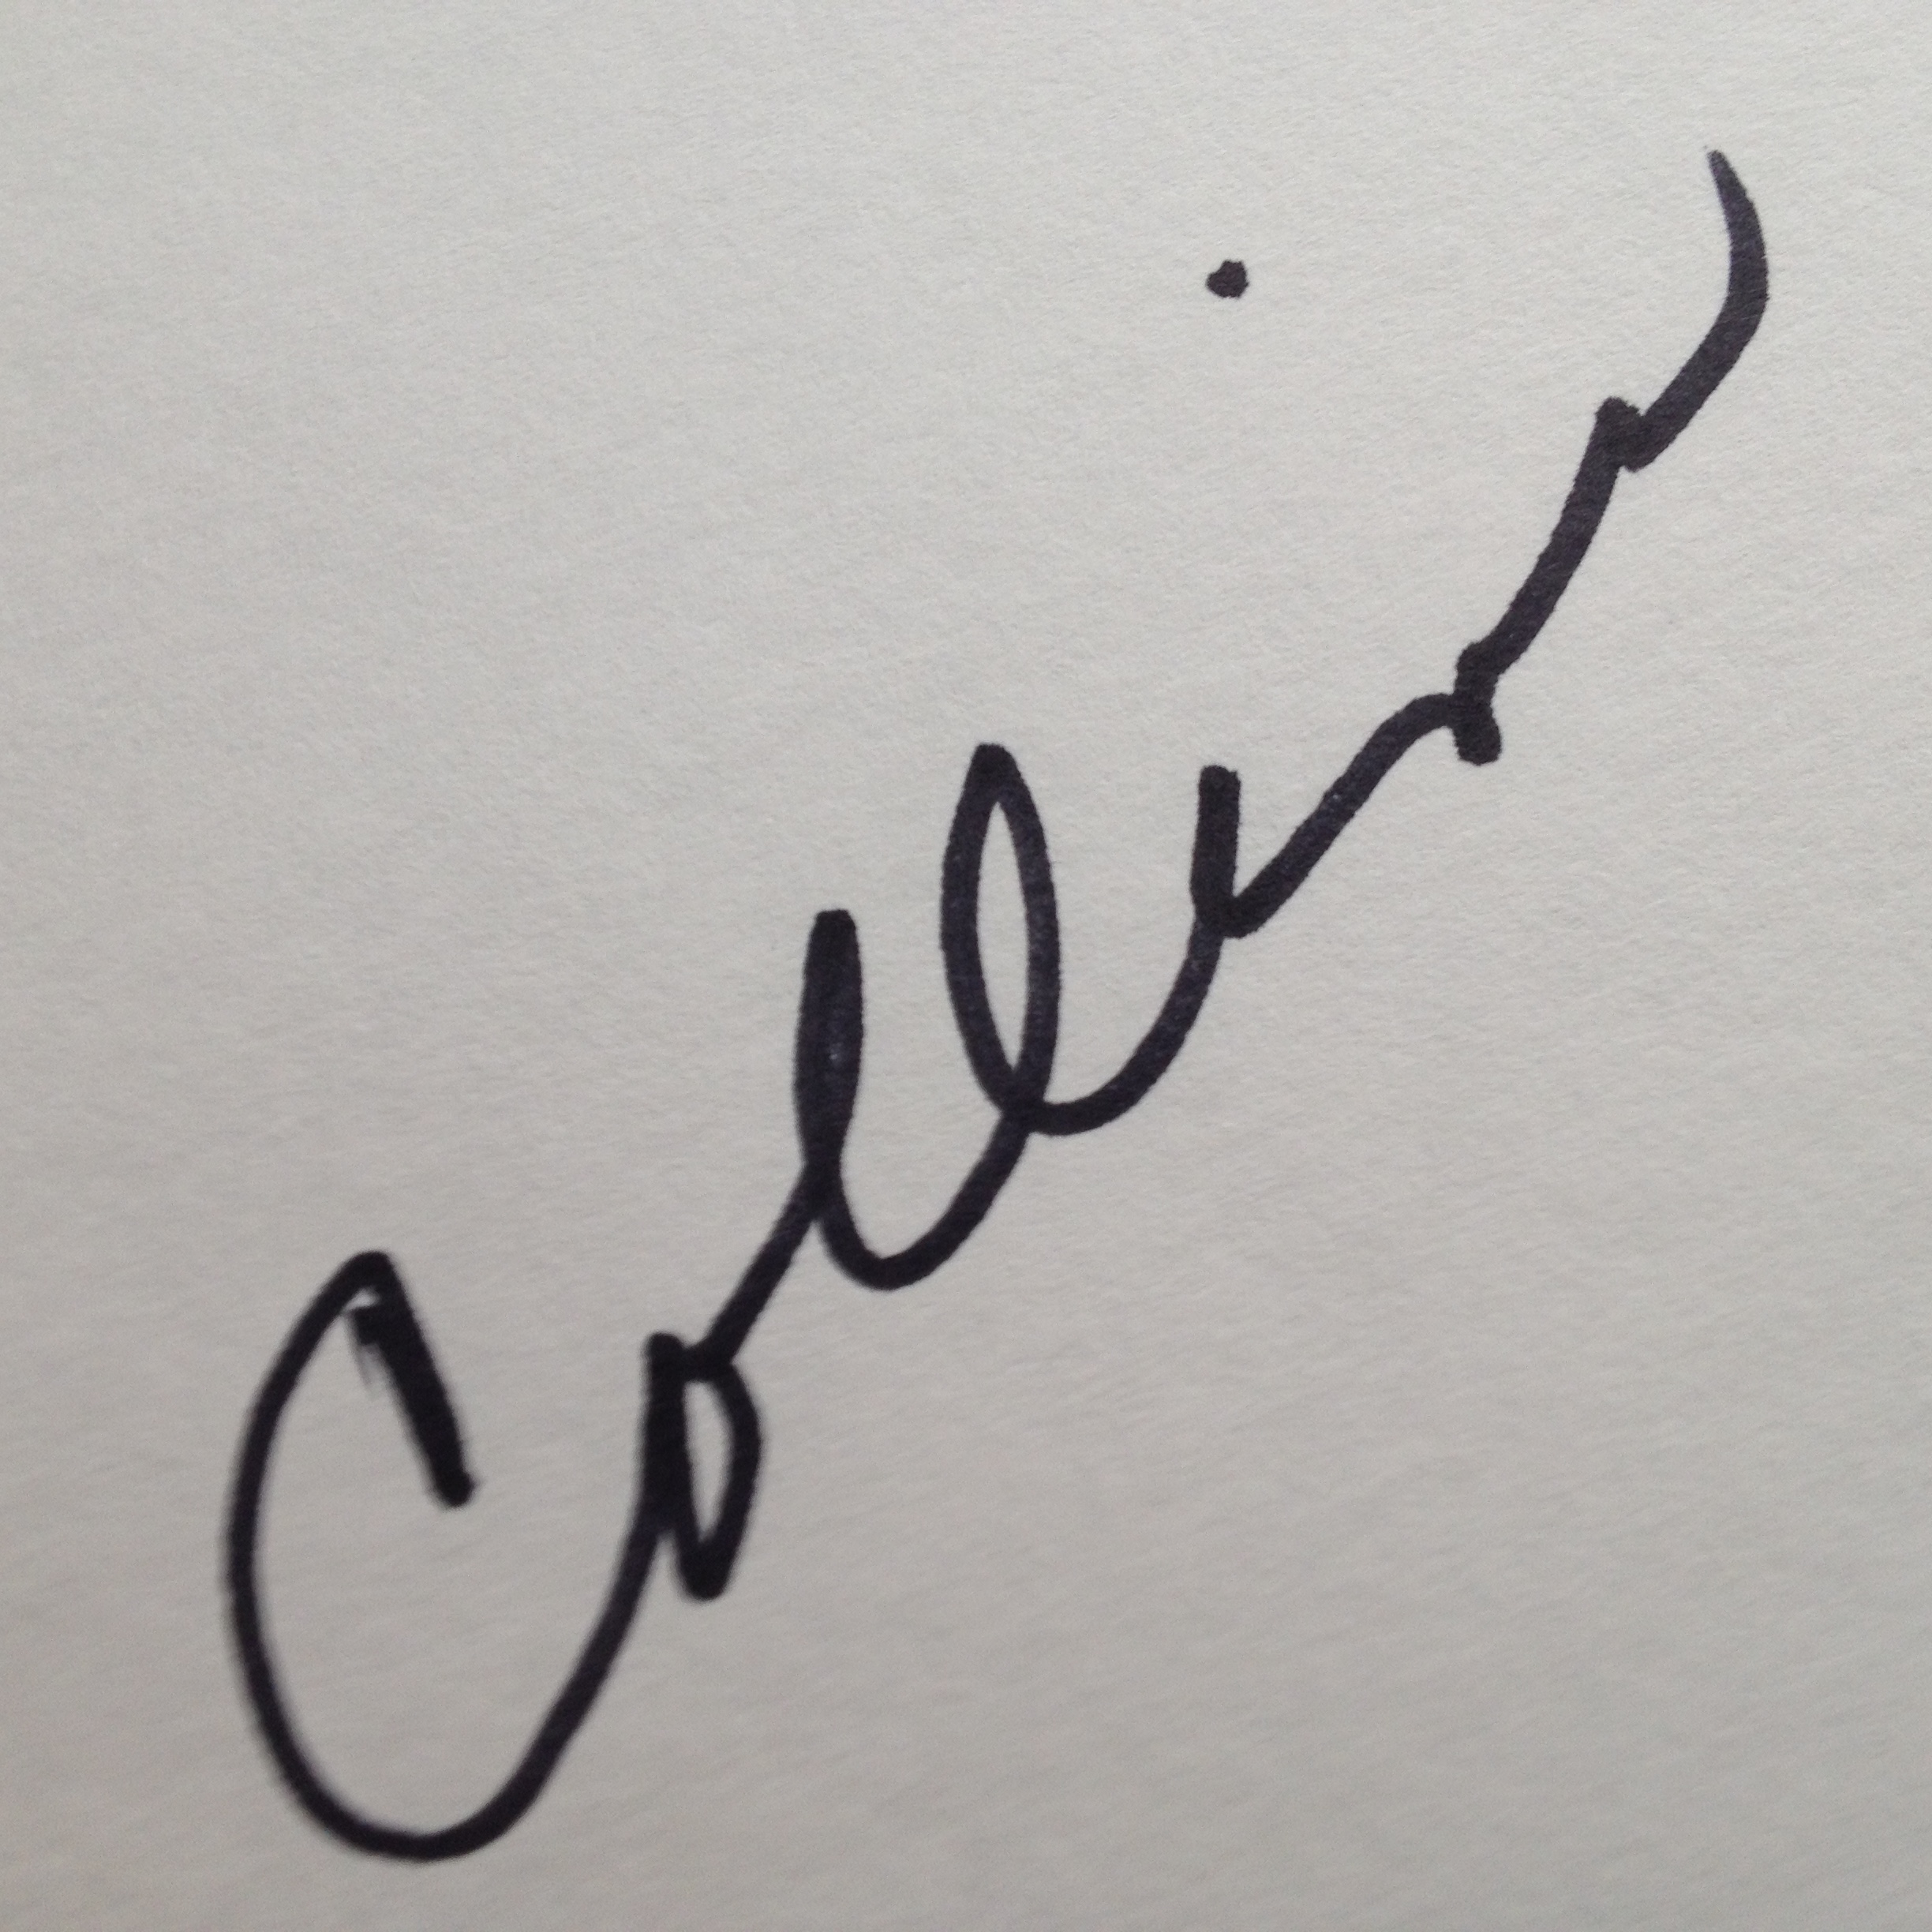 Pat lowery Collins's Signature